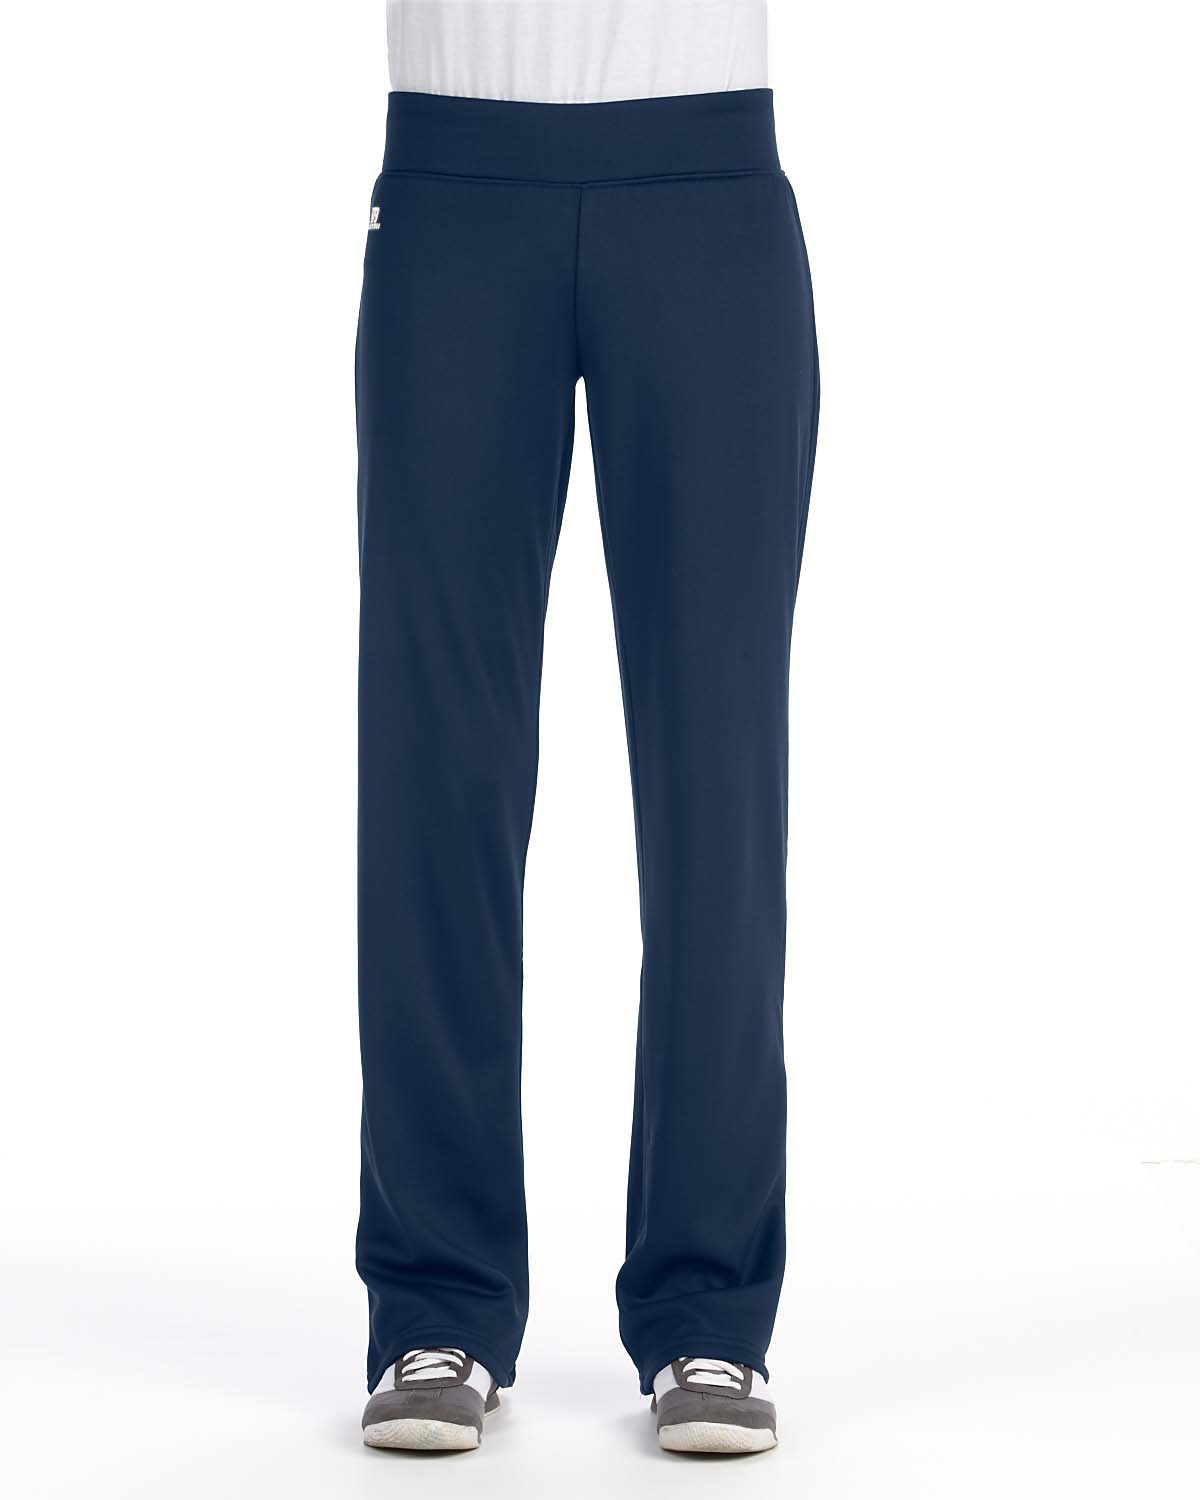 Russell Athletic FS5EFX - Tech Fleece Mid Rise Loose Fit Pant